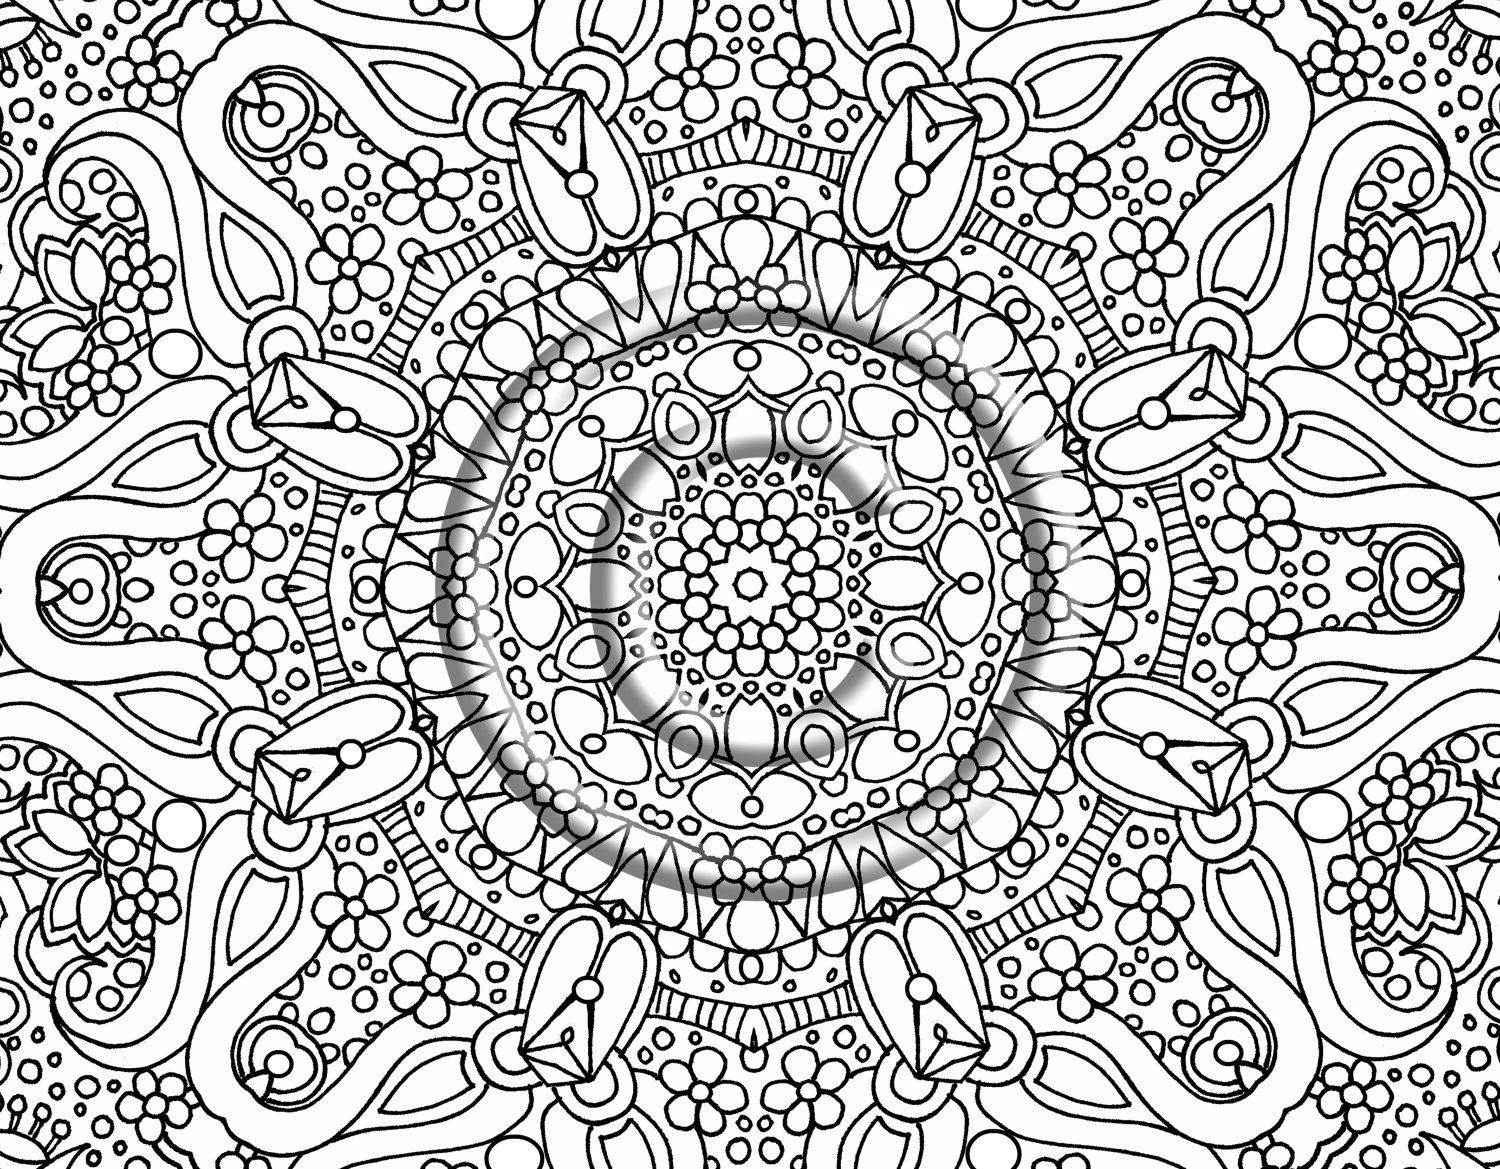 Bulldog Coloring Pages Collection Of Snowflake Coloring Pages for Adults Coloring Pages Inspiring Printable